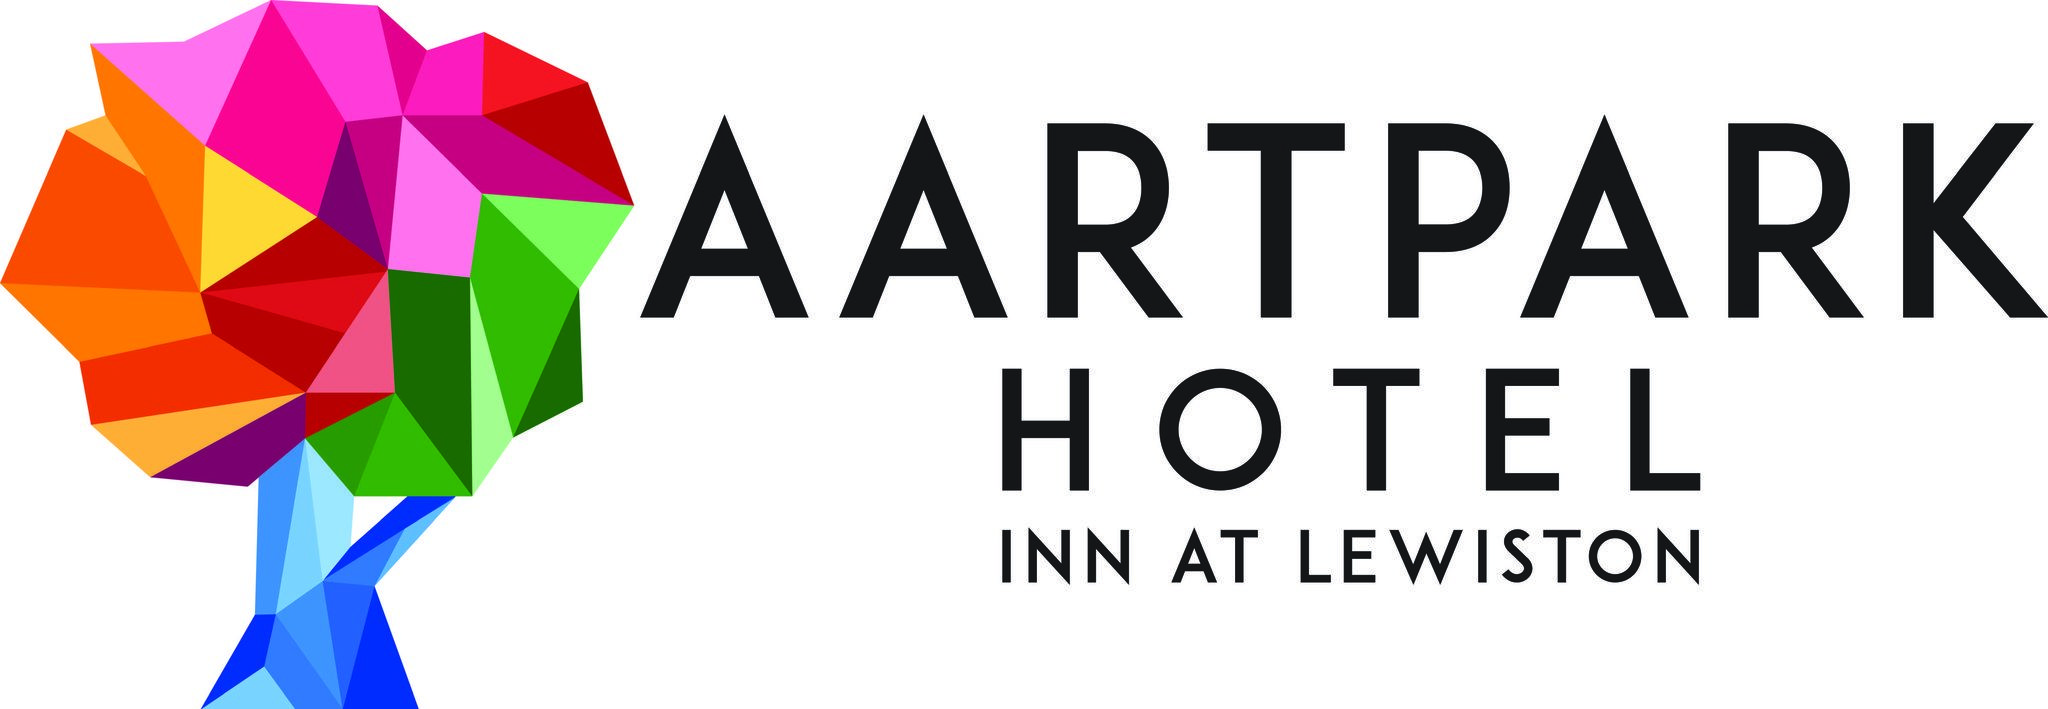 AArtpark Hotel Inn at Lewsiton